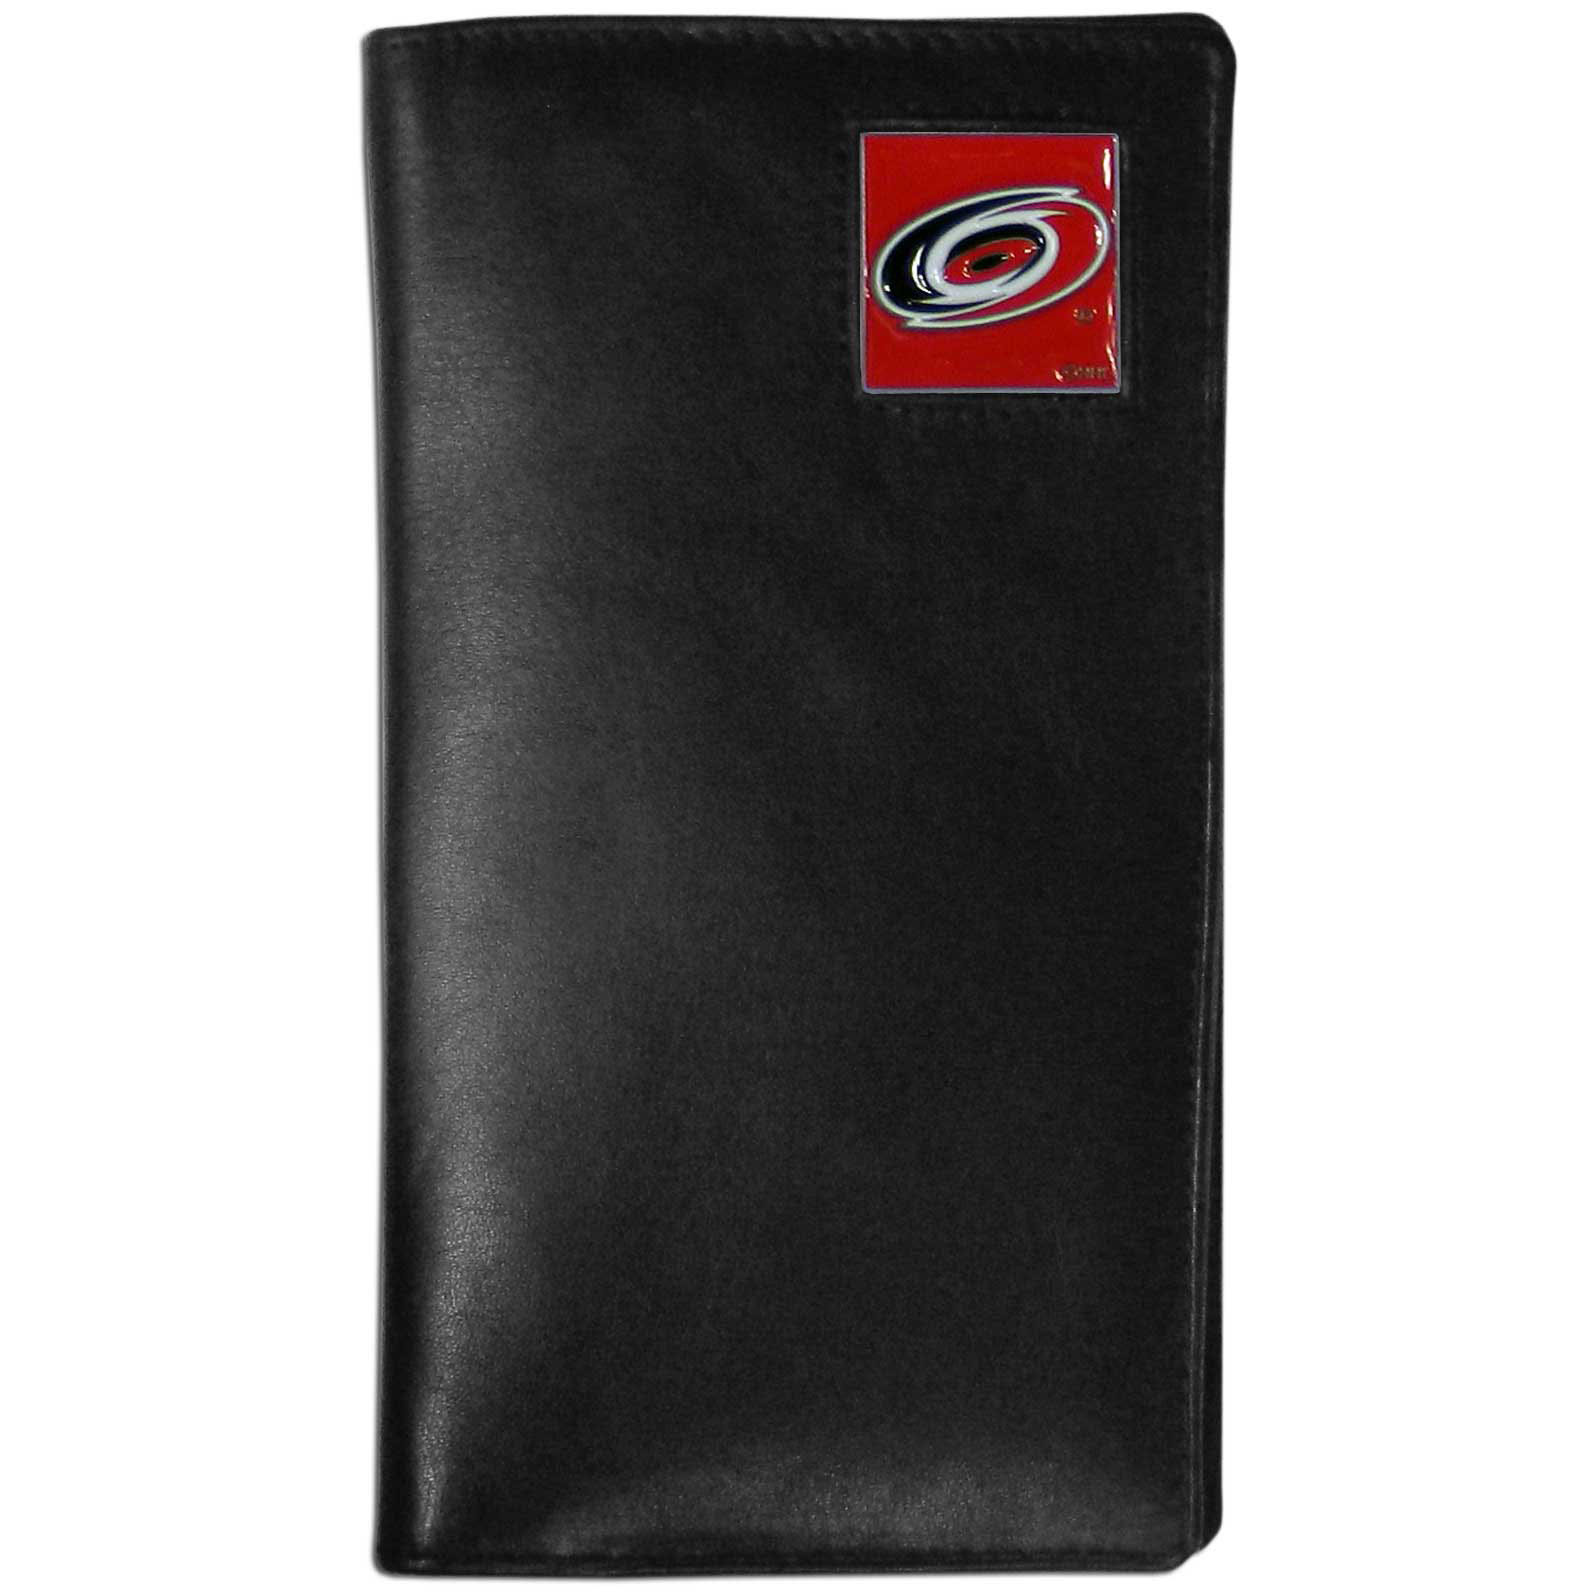 Carolina Hurricanes Tall Leather Wallet - This officially licensed Carolina Hurricanes tall leather wallet cover is made of high quality leather with a fully cast metal Carolina Hurricanes emblem with enameled Carolina Hurricanes color detail. The cover fits both side and top loaded checks and includes a large zippered pocket, windowed ID slot, numerous credit card slots and billfold pocket. Thank you for visiting CrazedOutSports